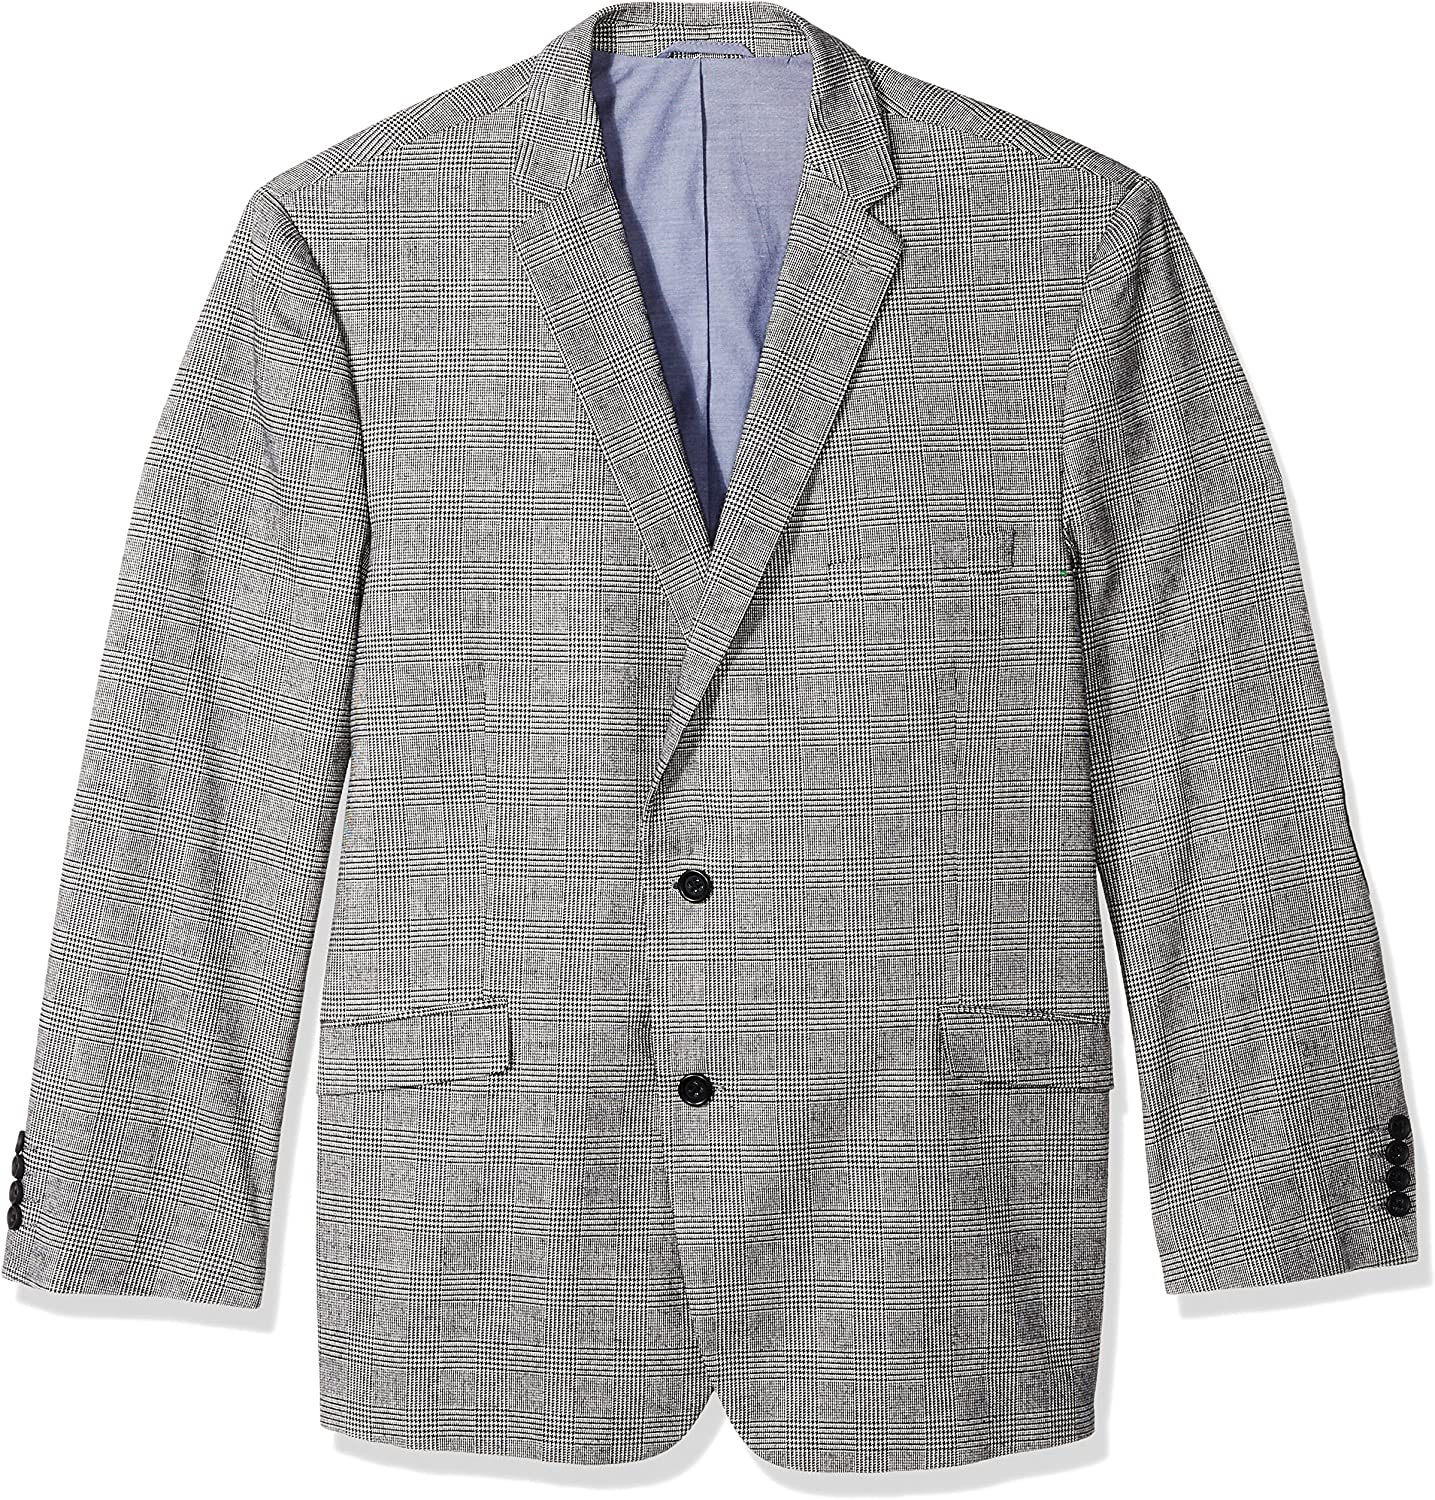 U.S Mens Big and Tall Stretch Cotton Sport Coat Polo Assn